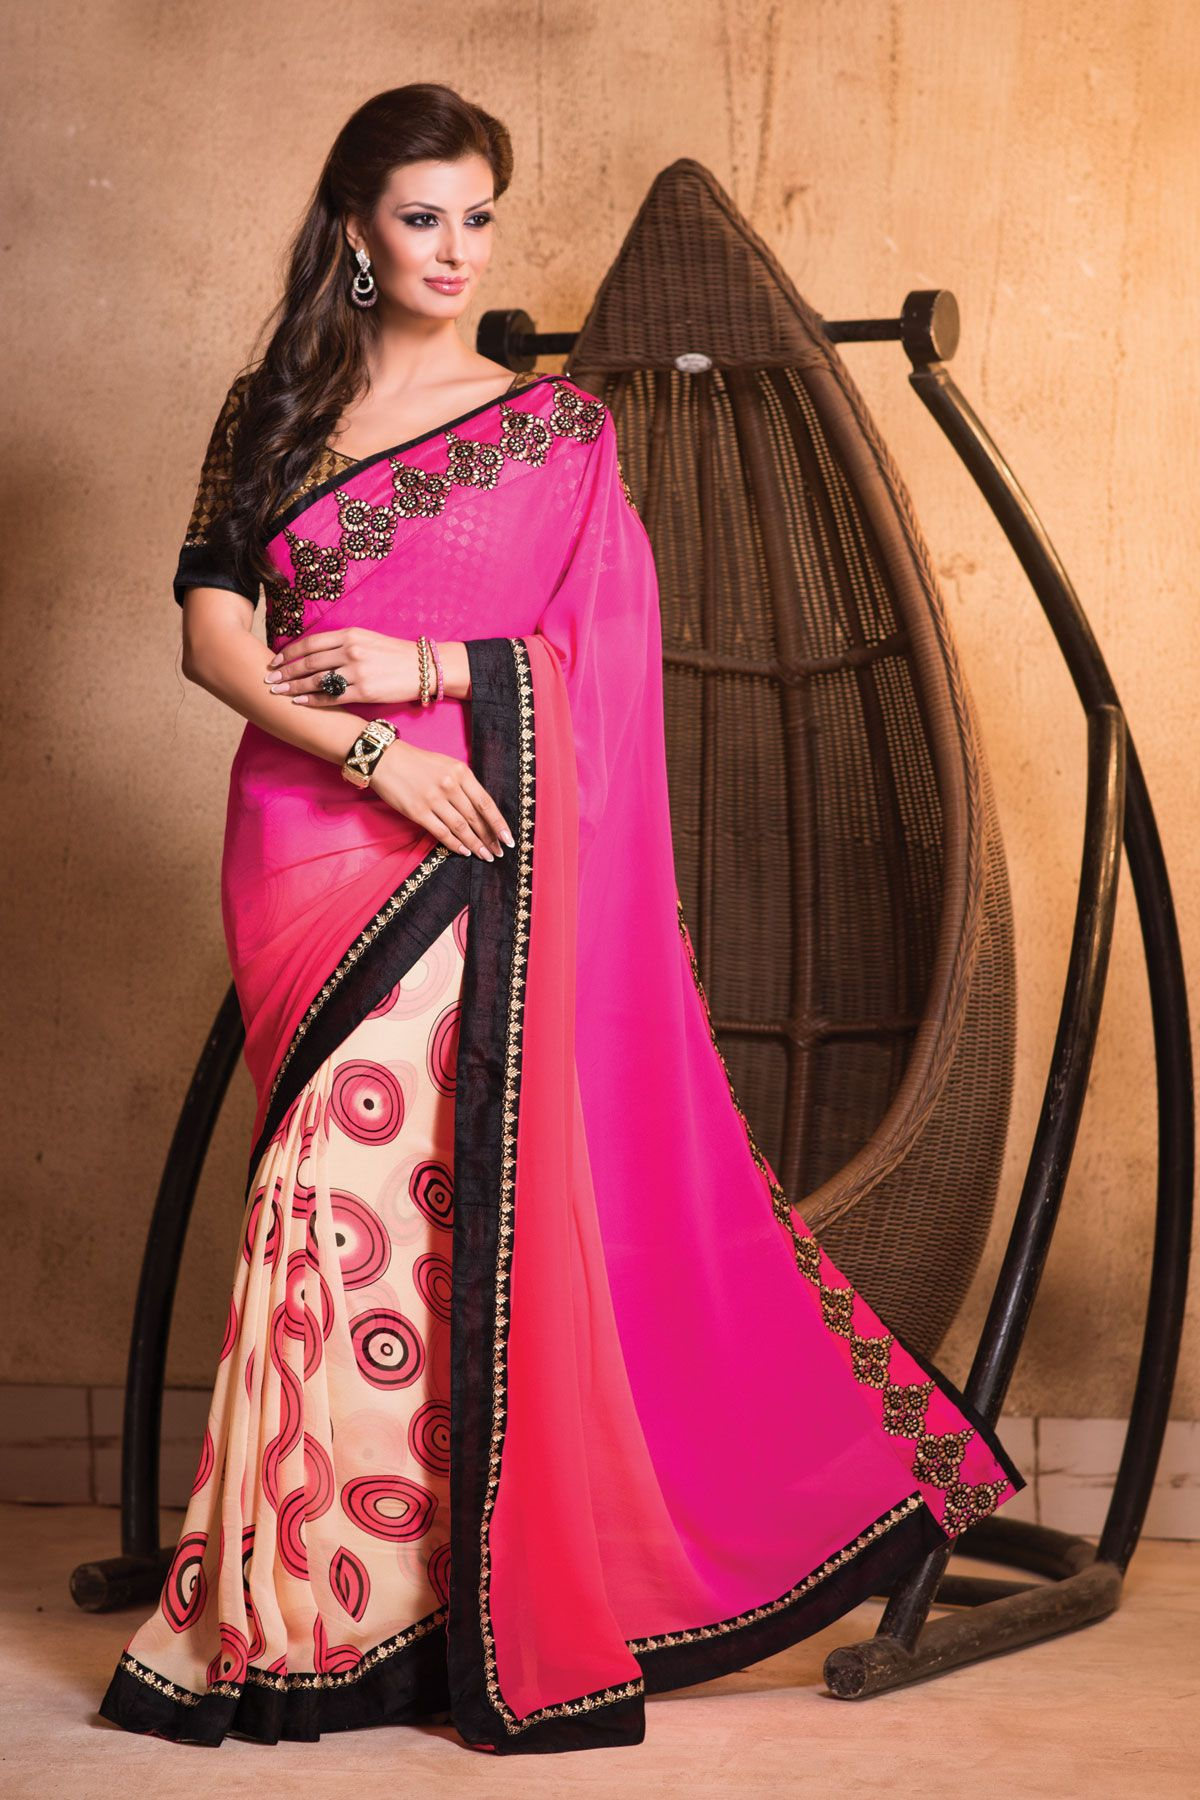 367acb75d06c8b Saree Online Shopping: Buy Latest Indian Sarees at Best Price. Trendy ...